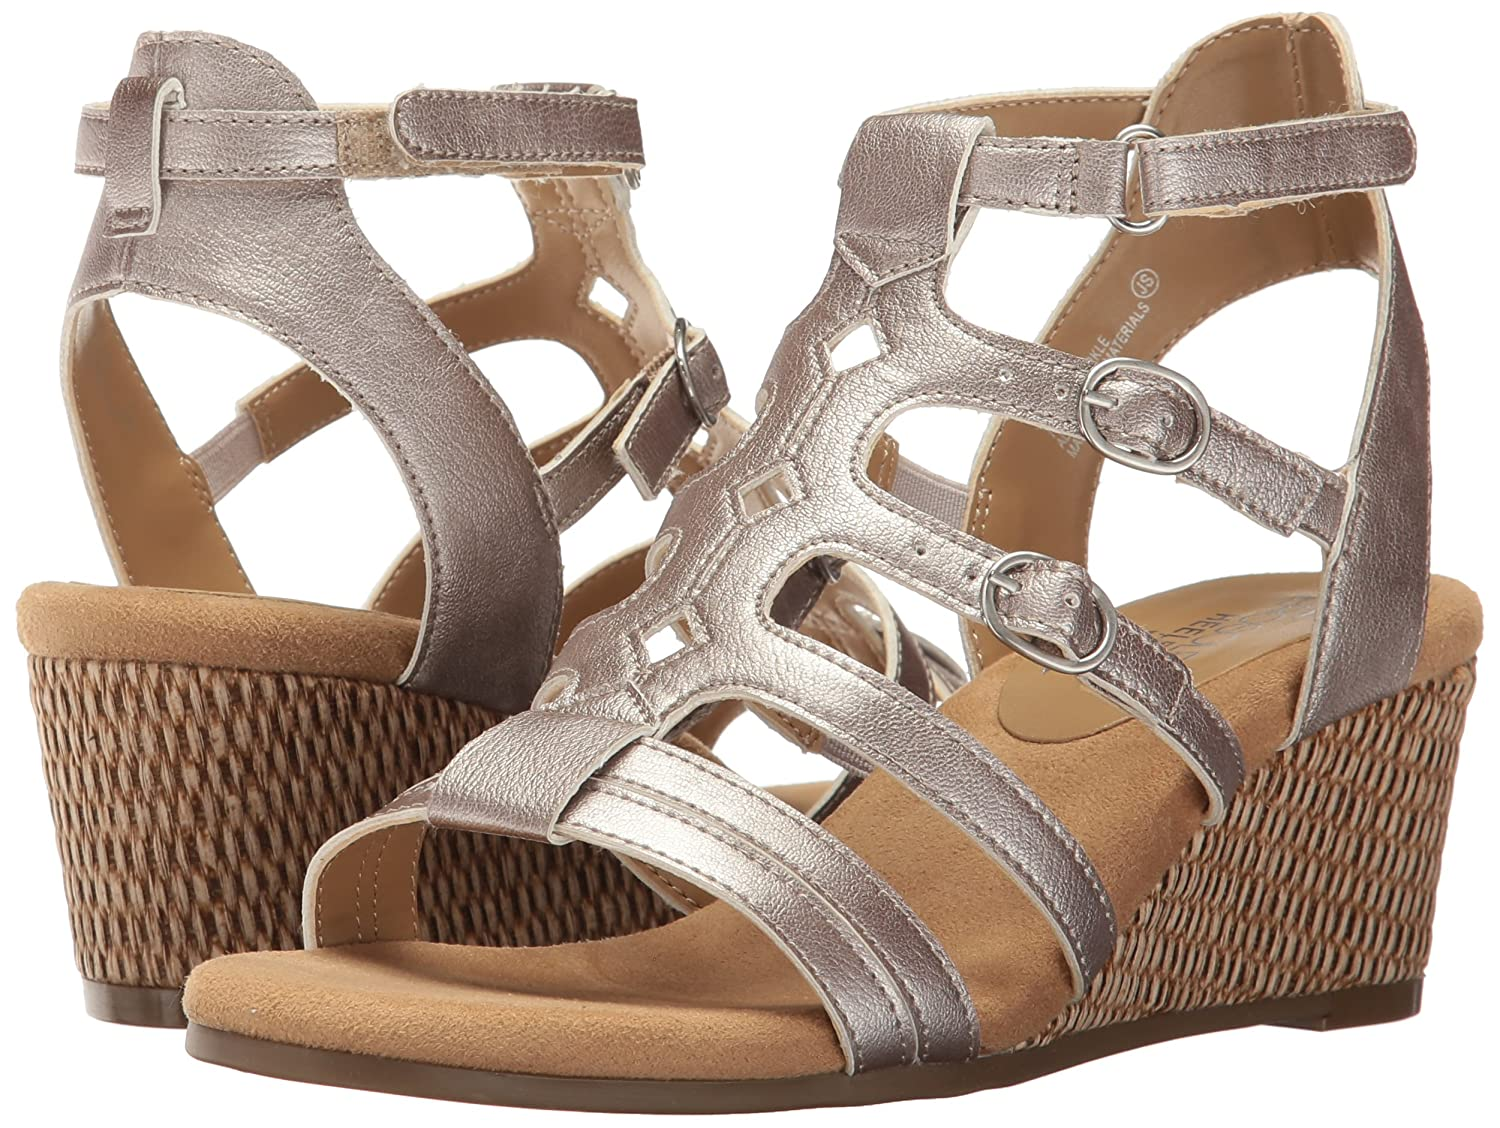 Aerosoles Women's Sparkle Wedge Sandal B01N4PDX8S 12 B(M) US|Silver